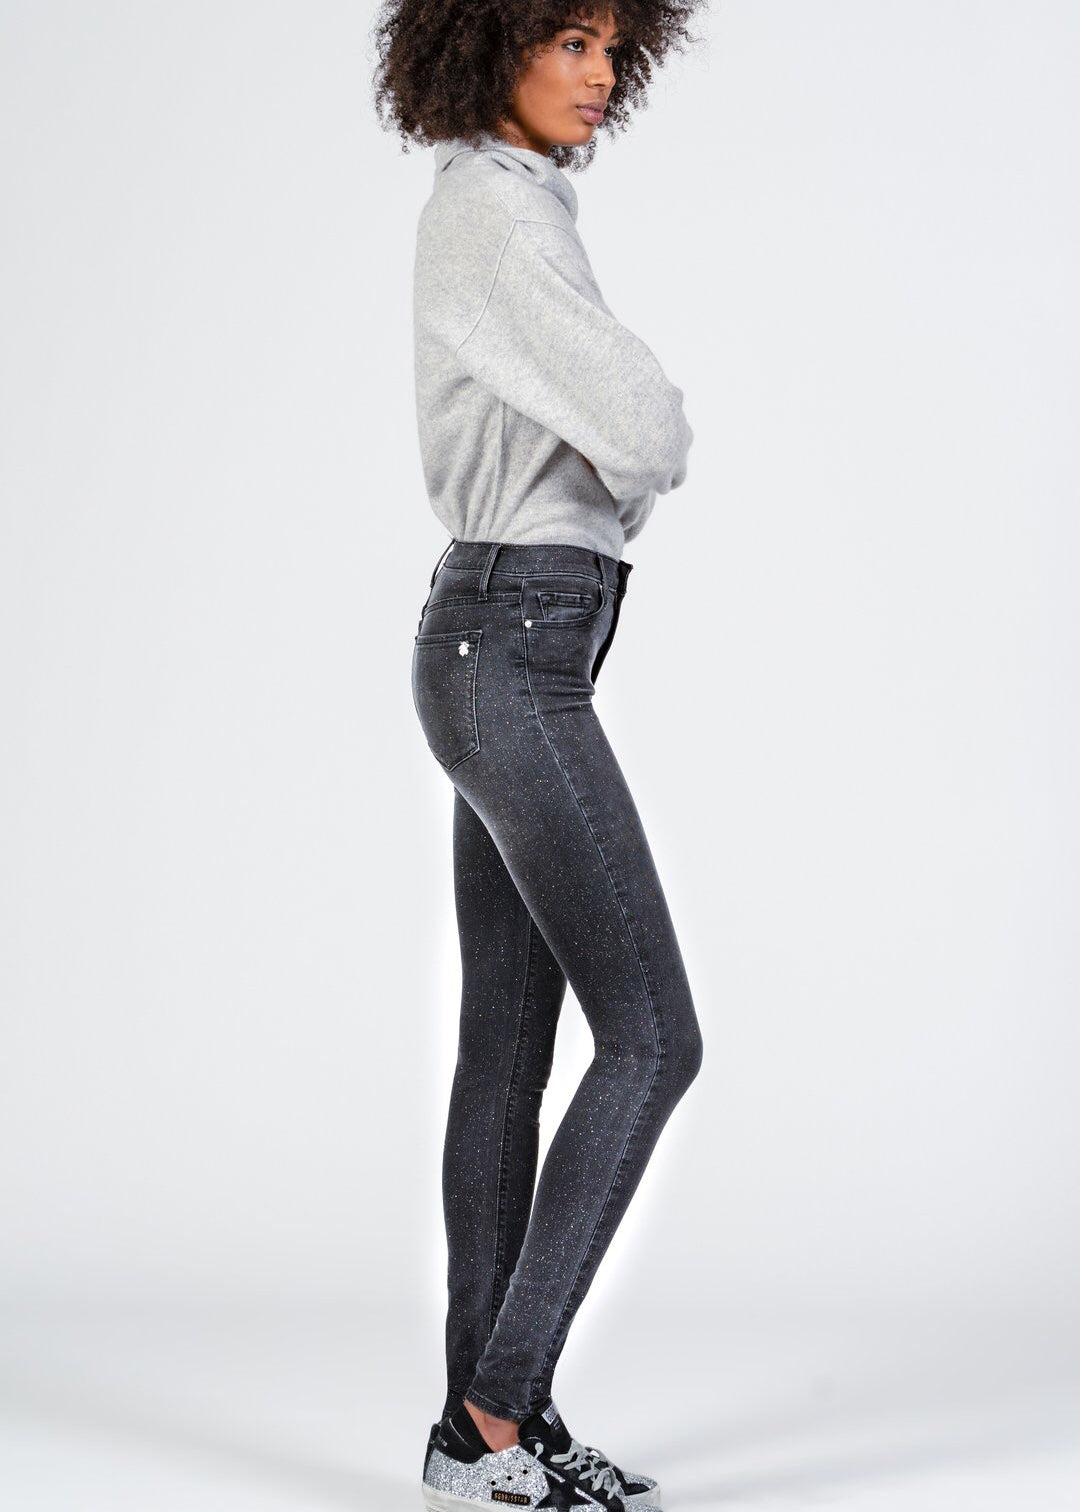 Black Orchid Denim Gisele High Rise Super Skinny with All Over Glitter - Slow Drive - Luxe EQ